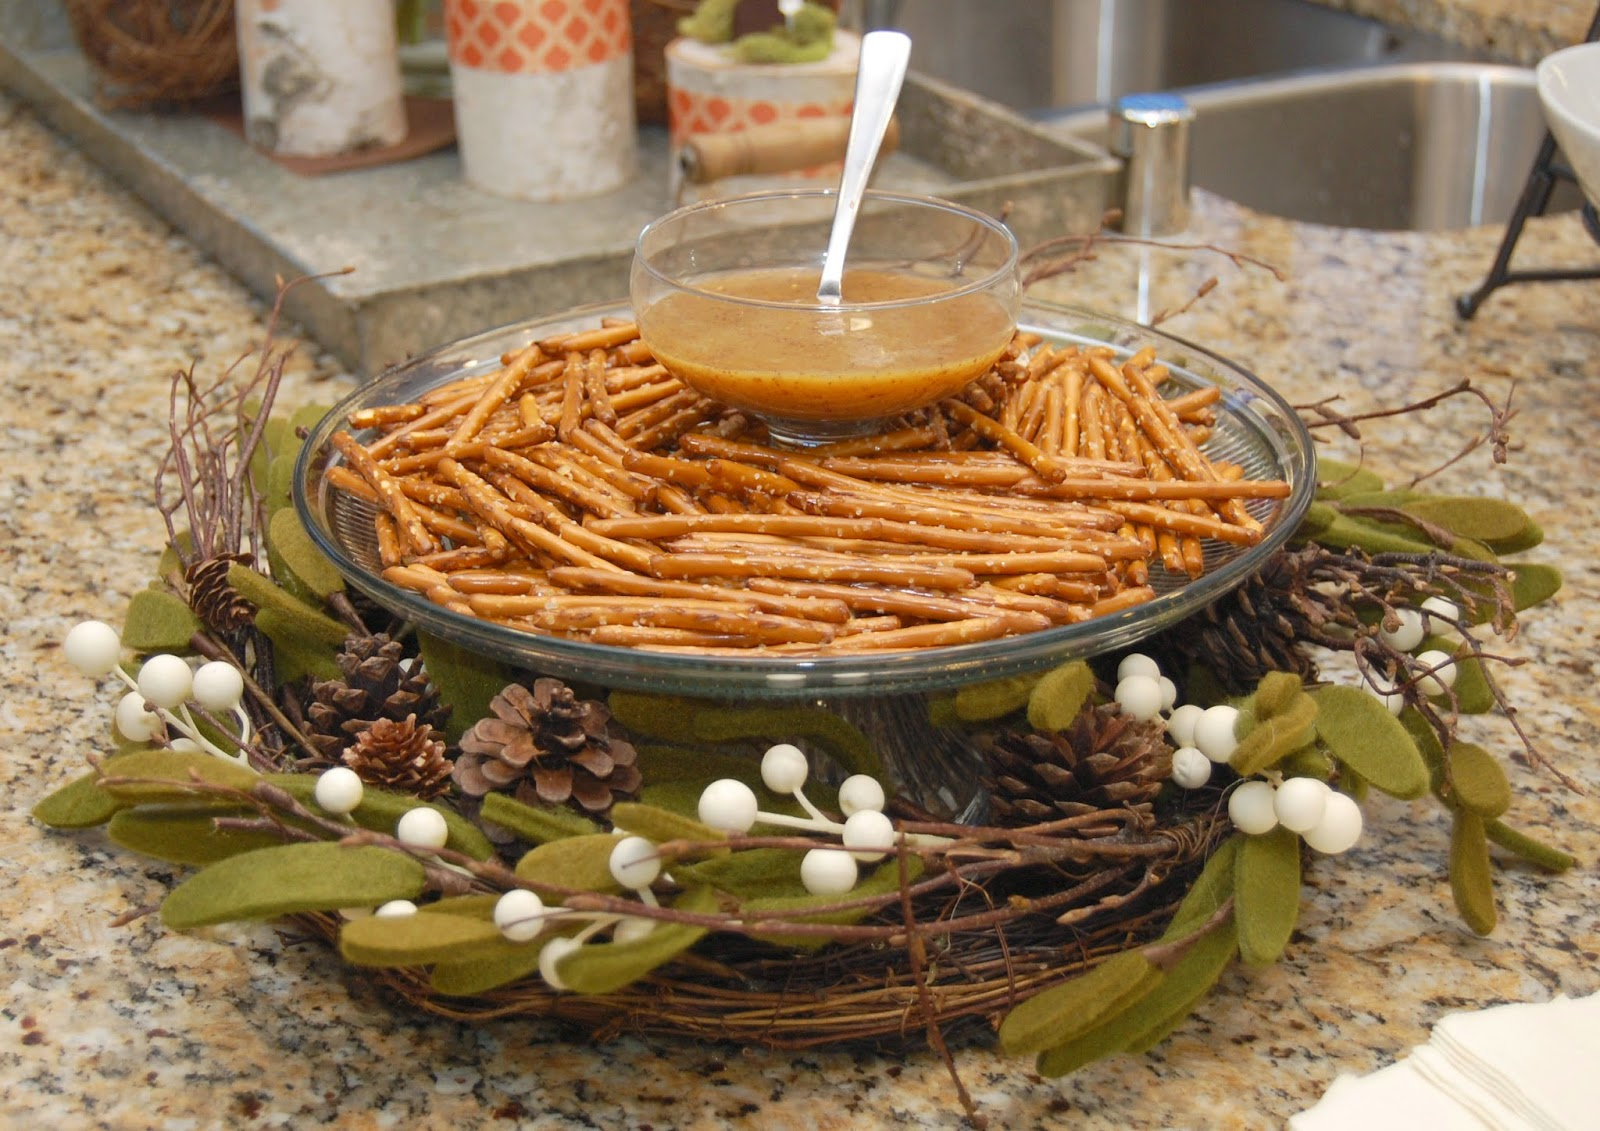 pretzels to look like twigs what a genius idea